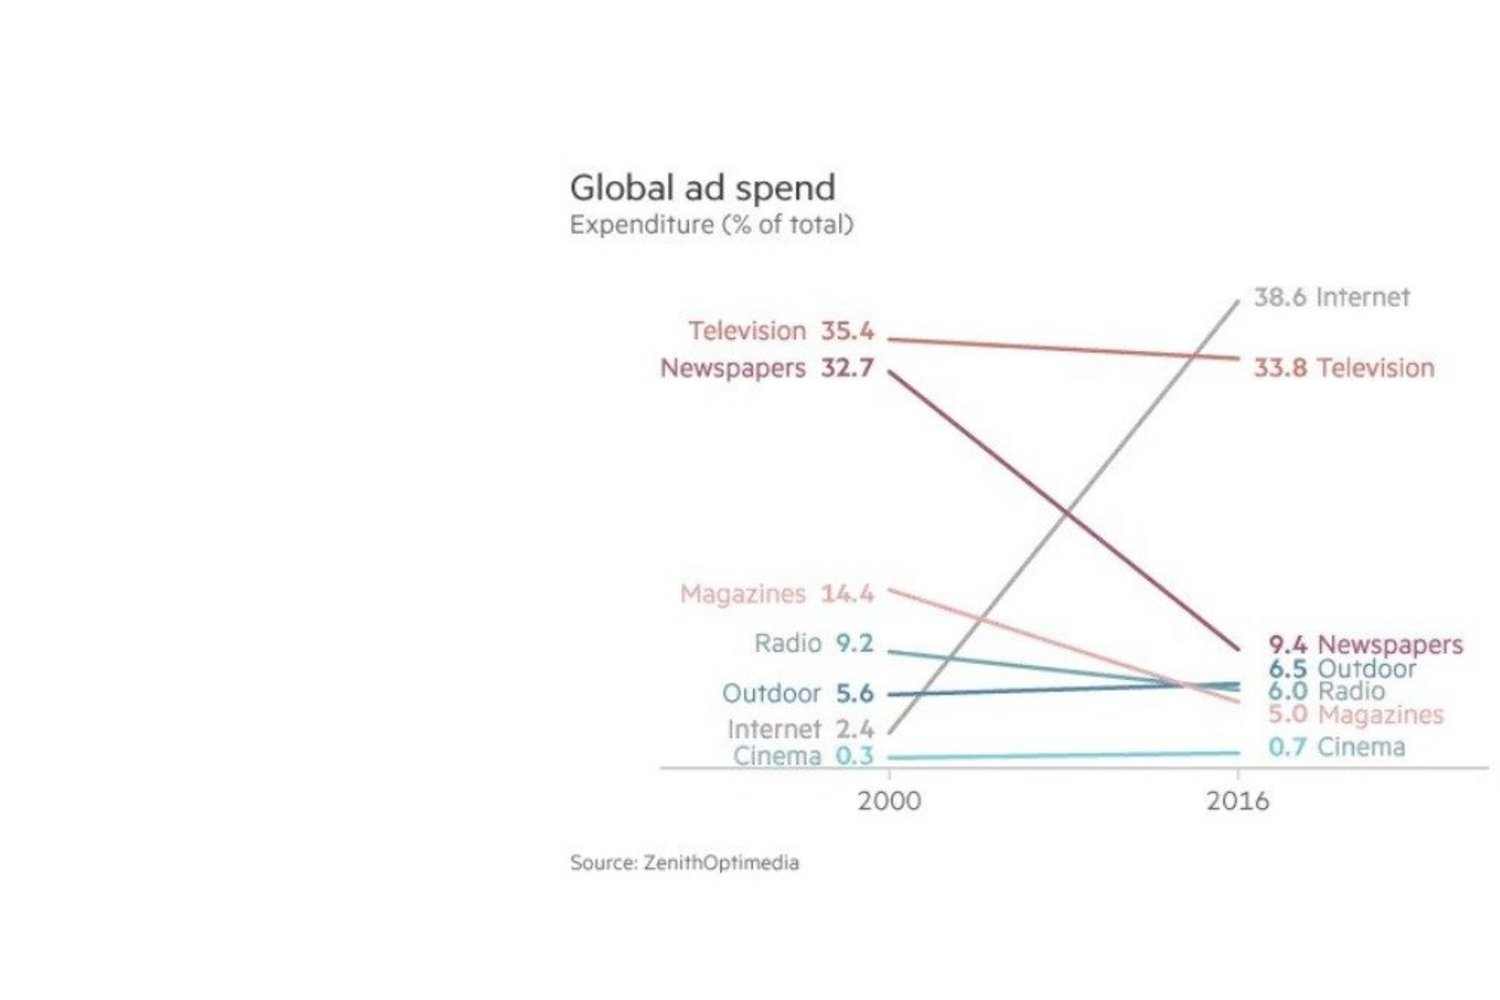 global-ad-spend-image